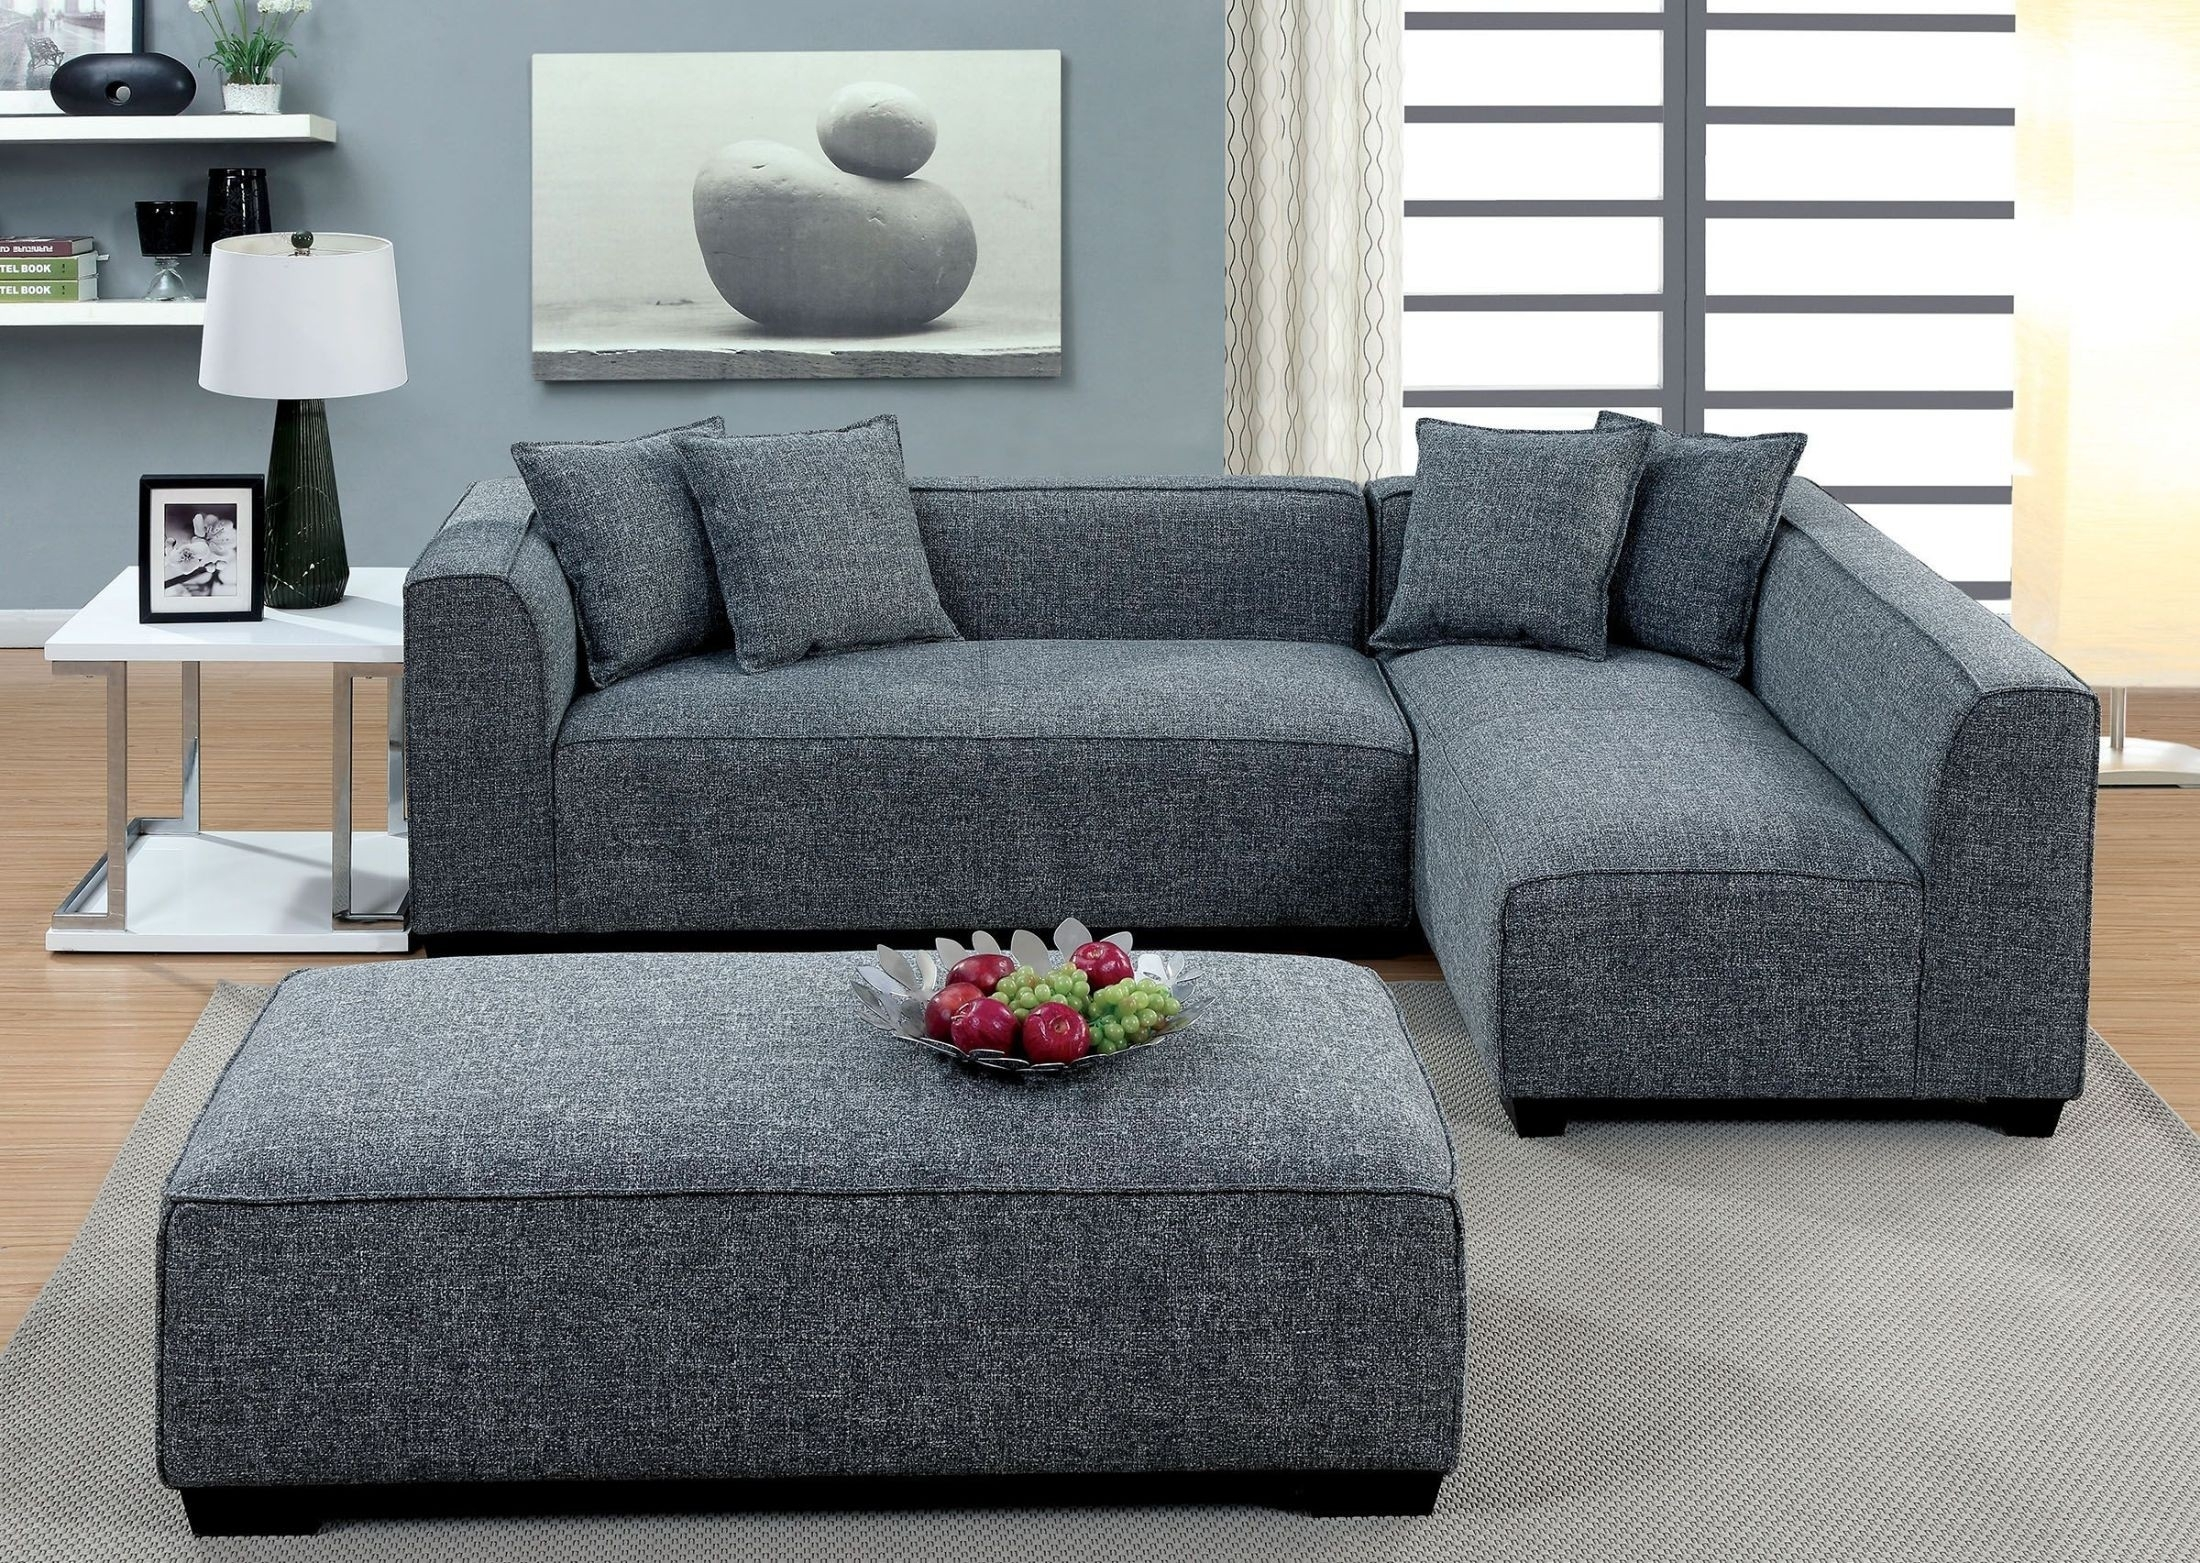 Jaylene Gray Sectional From Furniture Of America | Coleman Furniture with regard to Lucy Dark Grey 2 Piece Sectionals With Laf Chaise (Image 12 of 30)